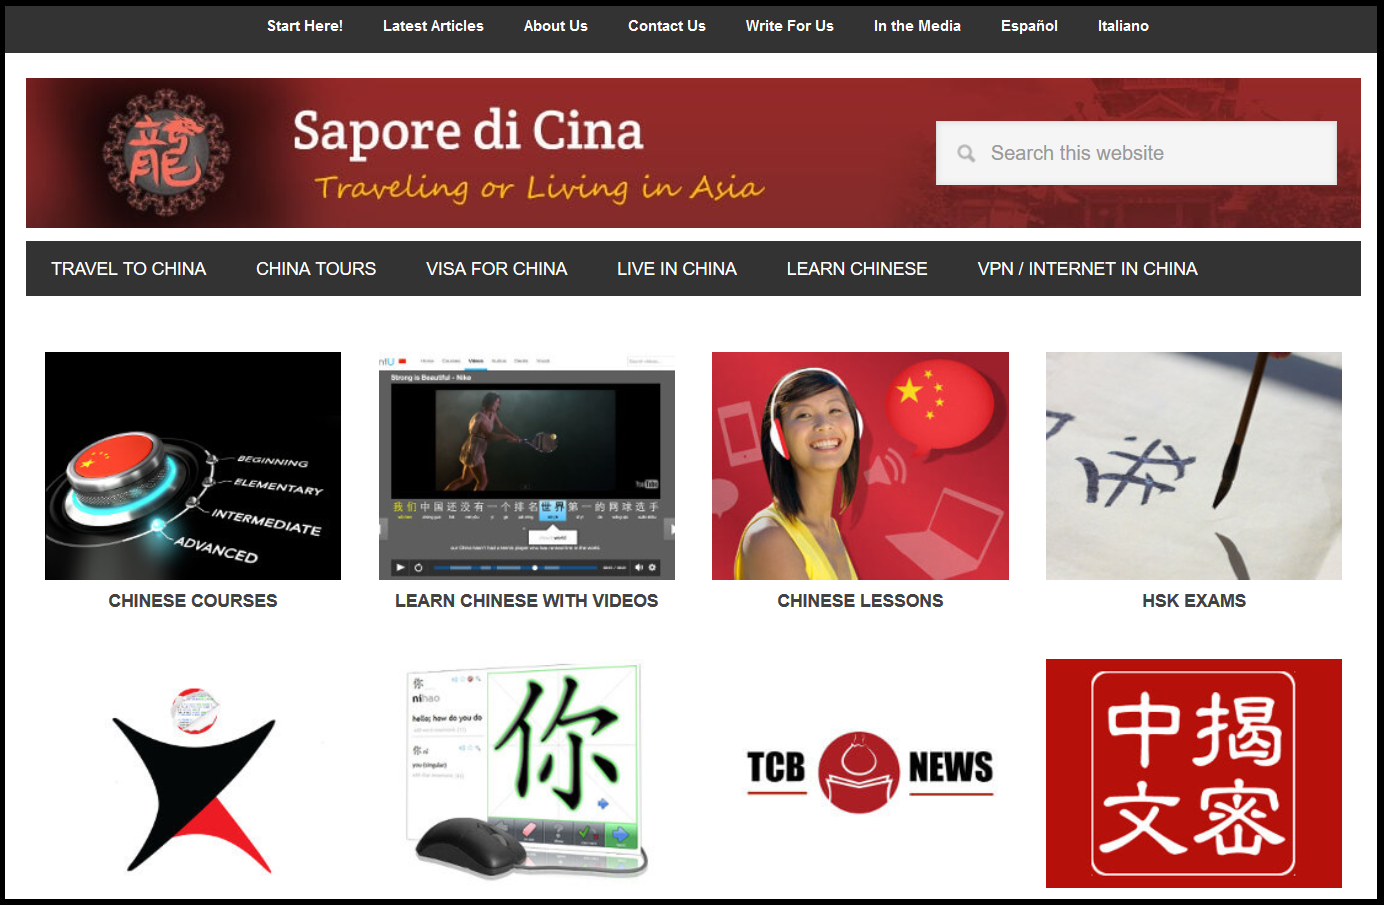 Sapore di Cina: traveling or living in Asia blog